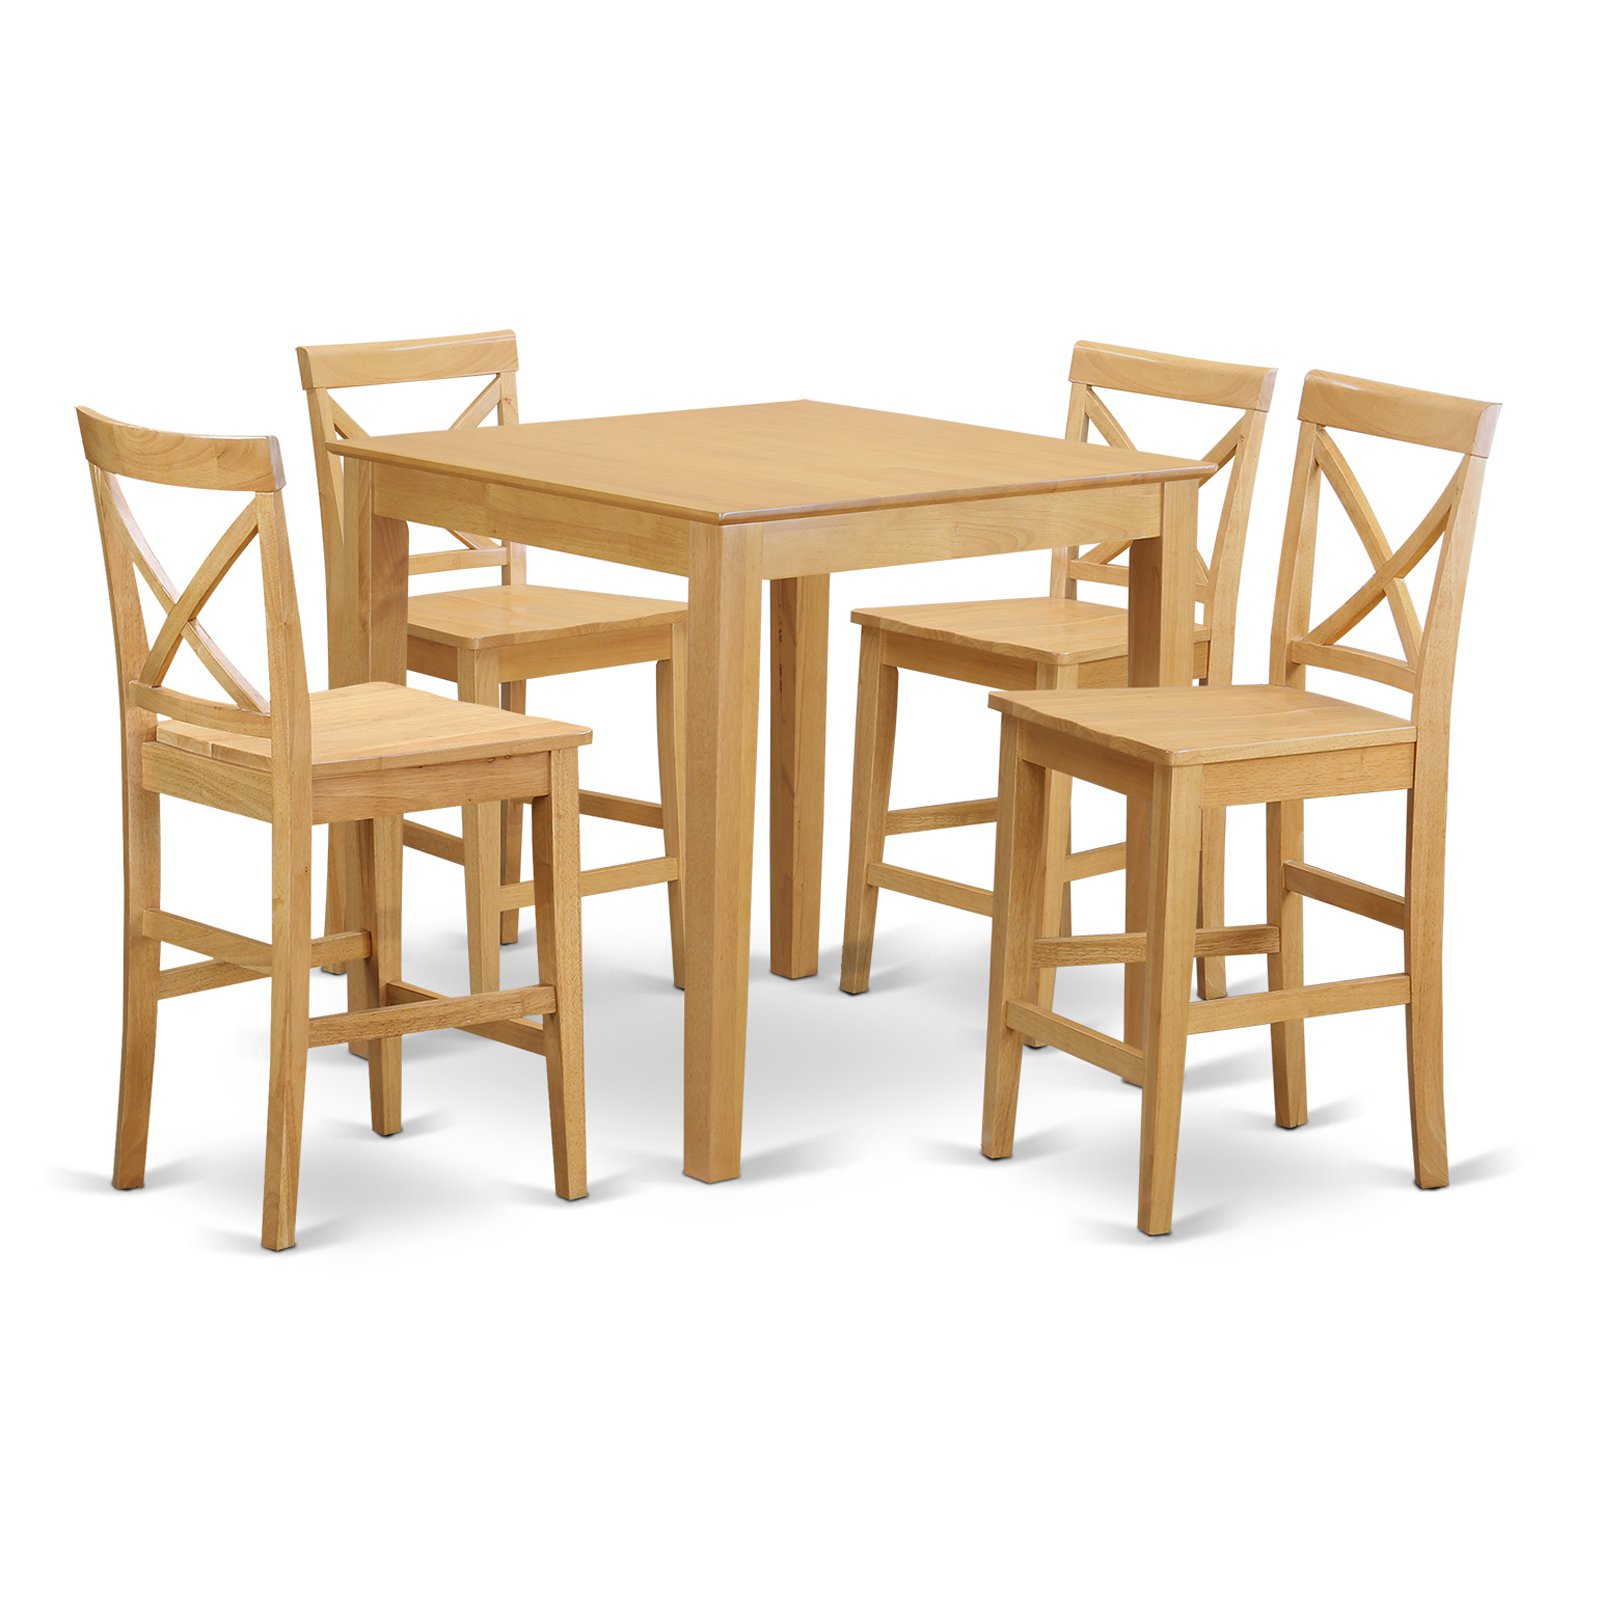 East West Furniture Pub 5 Piece High Cross Dining Table Set